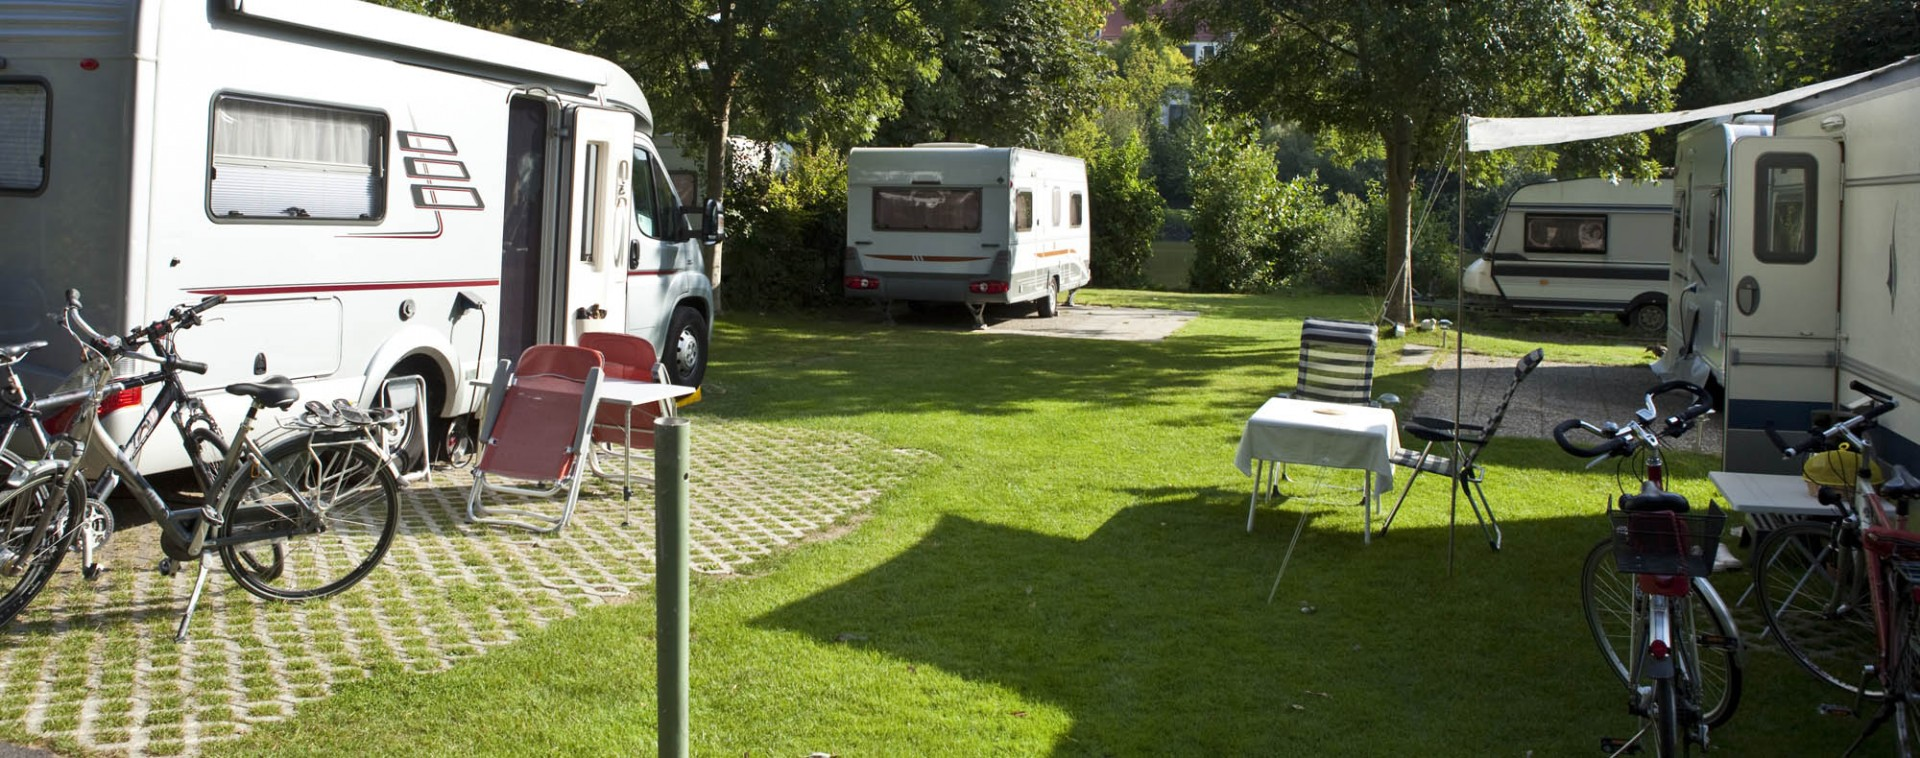 Campings in provincie Luik | © ThinkstockPhotos